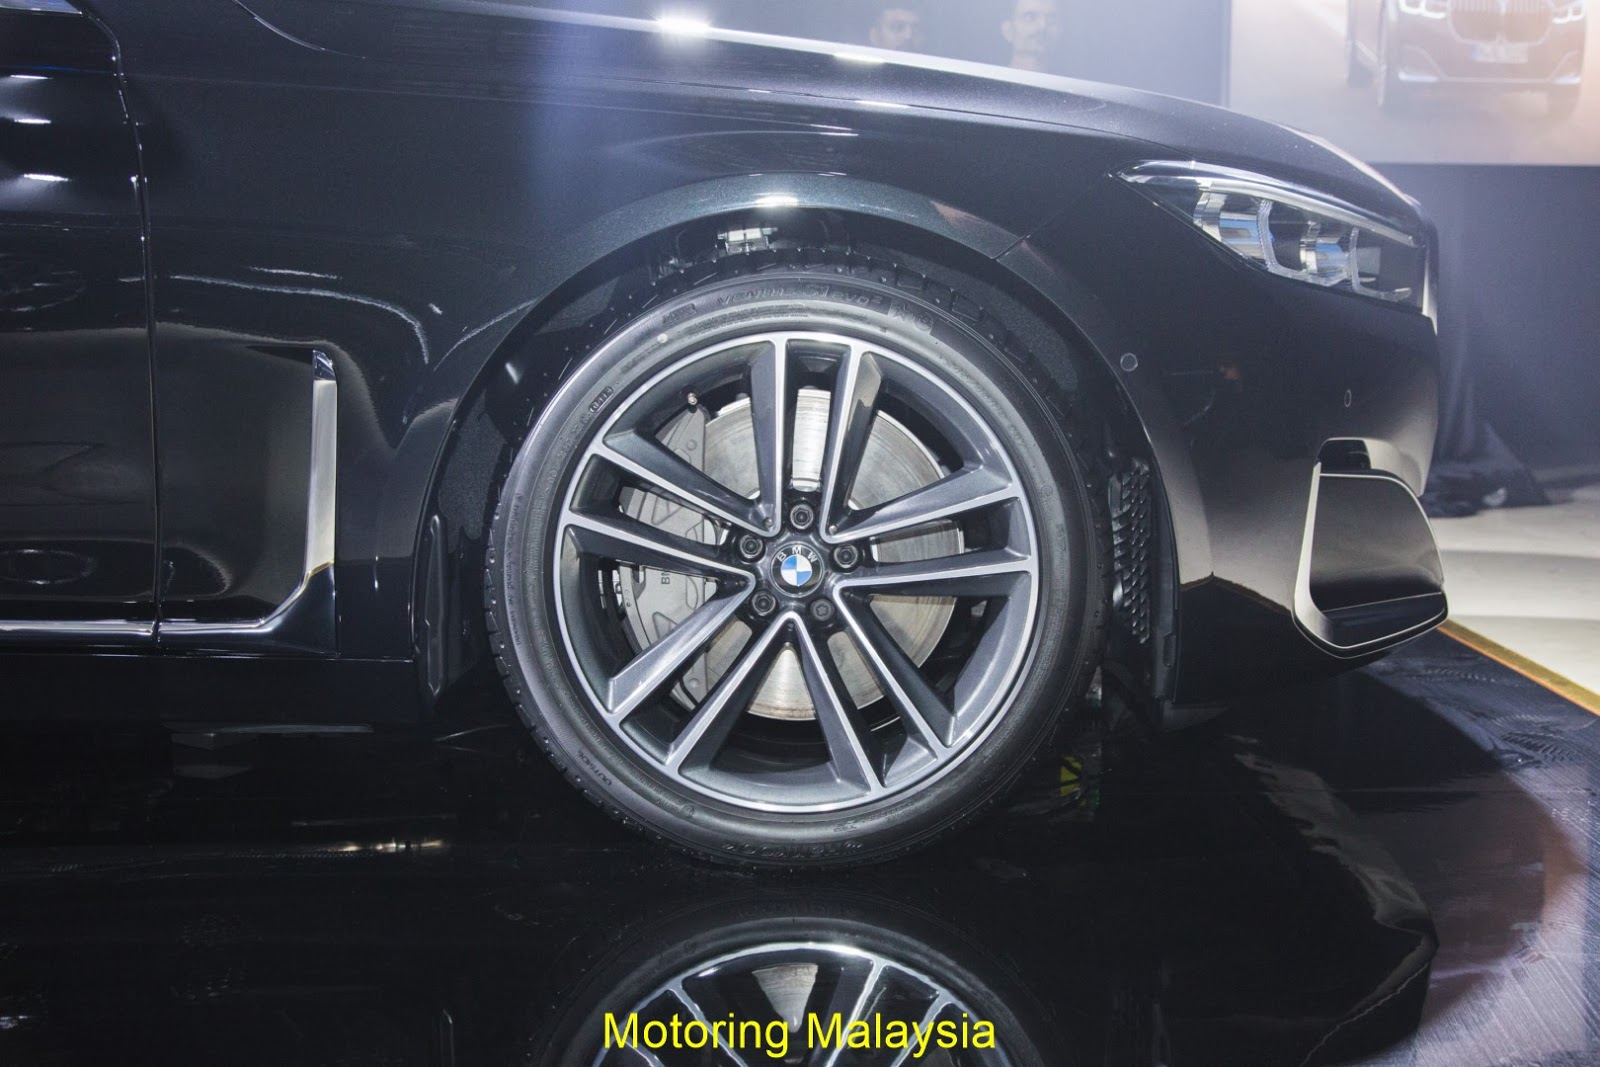 Motoring-Malaysia: The Facelifted BMW 7 Series Has Been